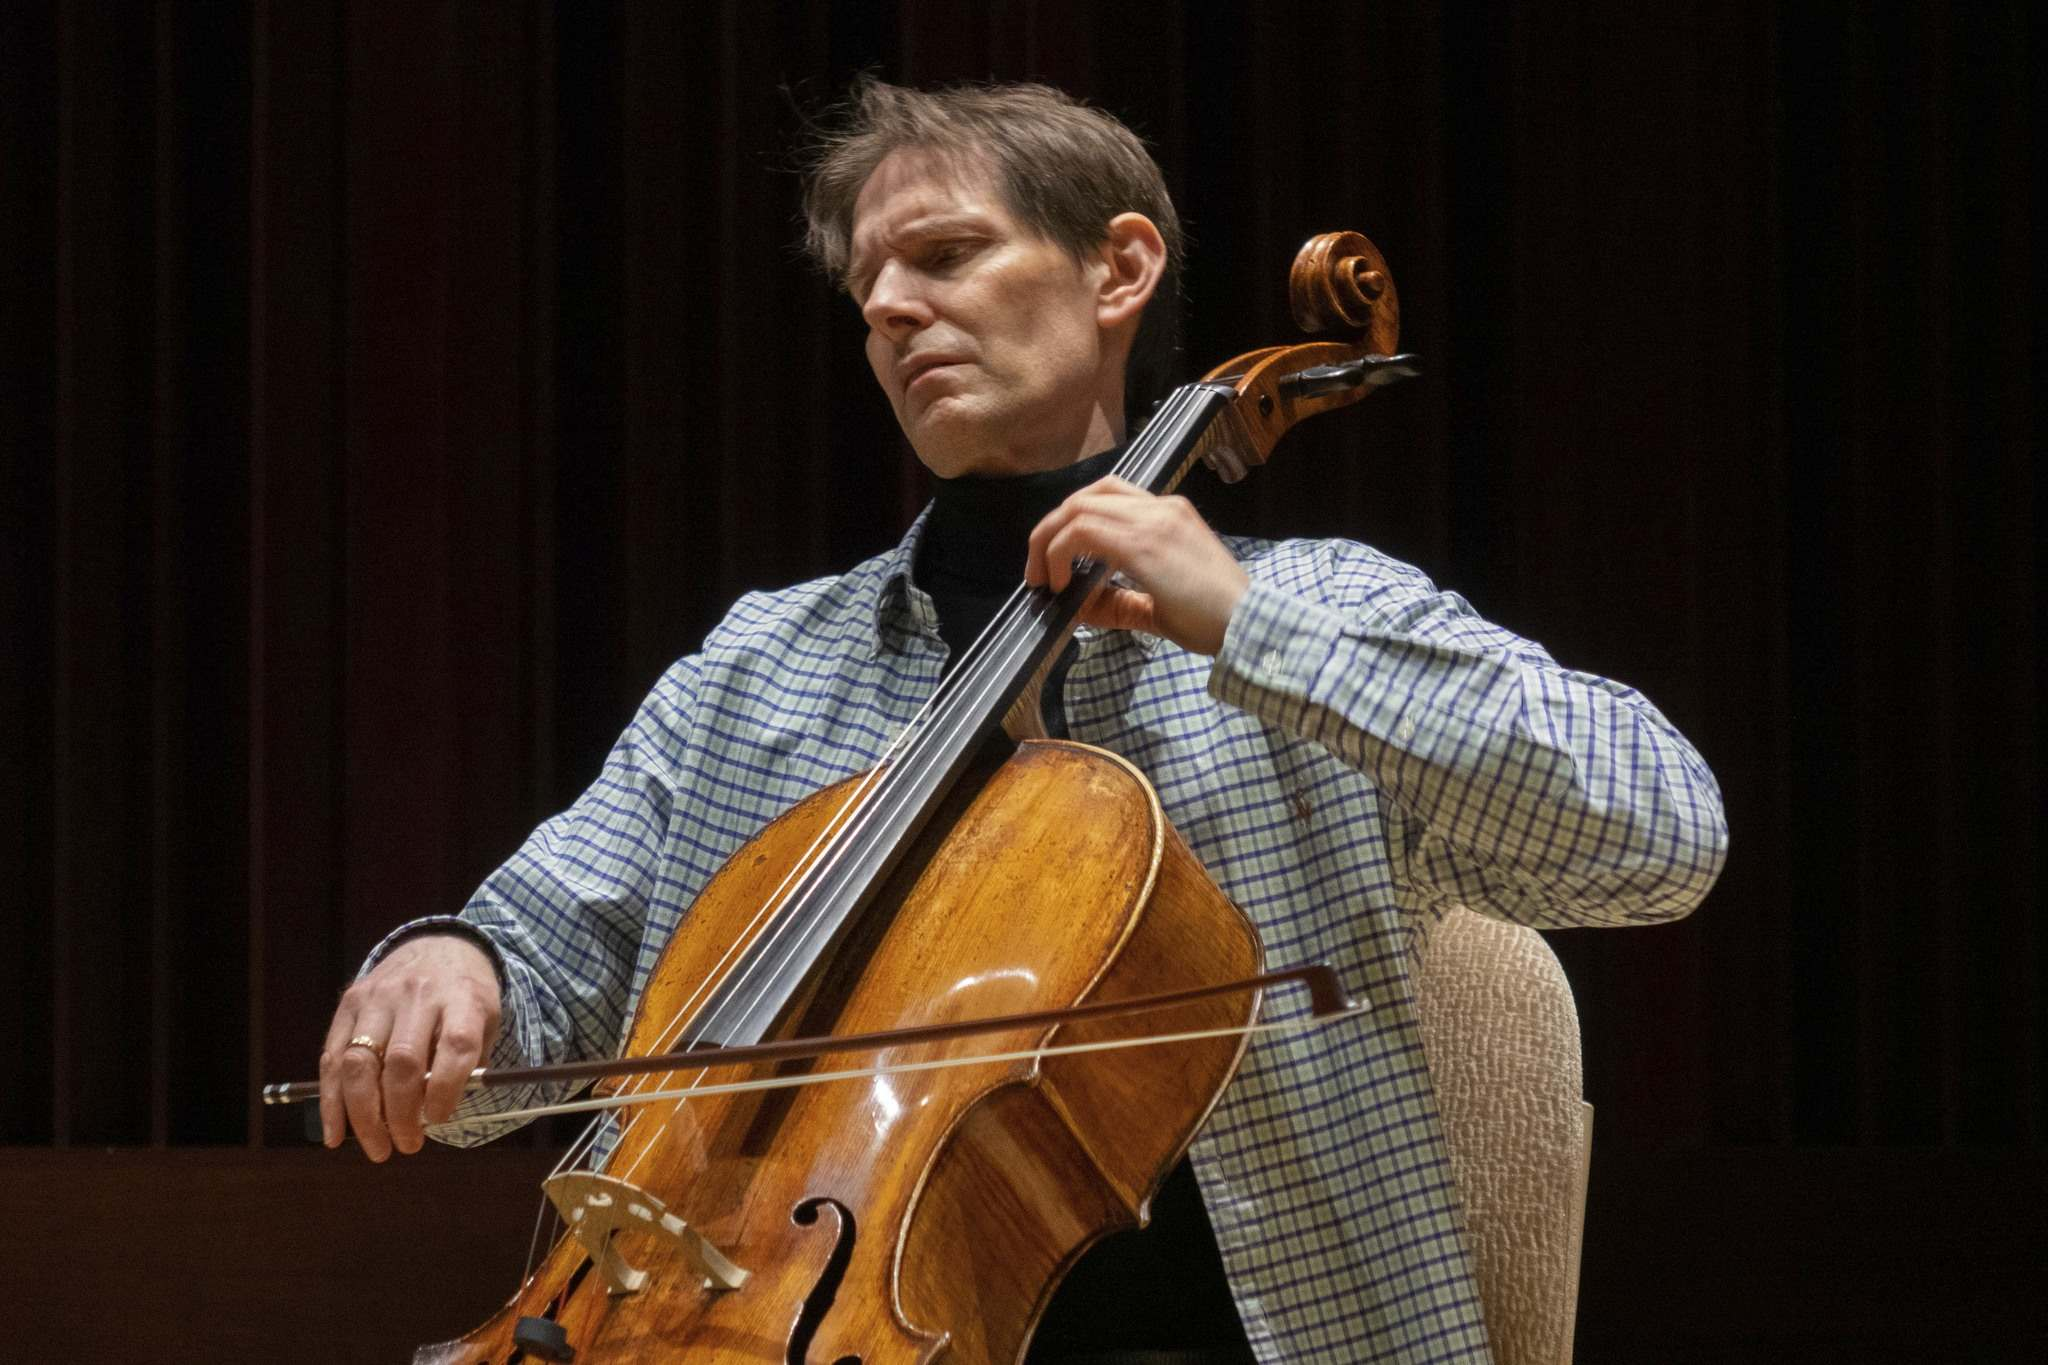 MARK RASH PHOTO</p><p>Cellist Paul Marleyn is the founding artistic director of the Agassiz Chamber Music Festival, now in its 22nd year.</p>